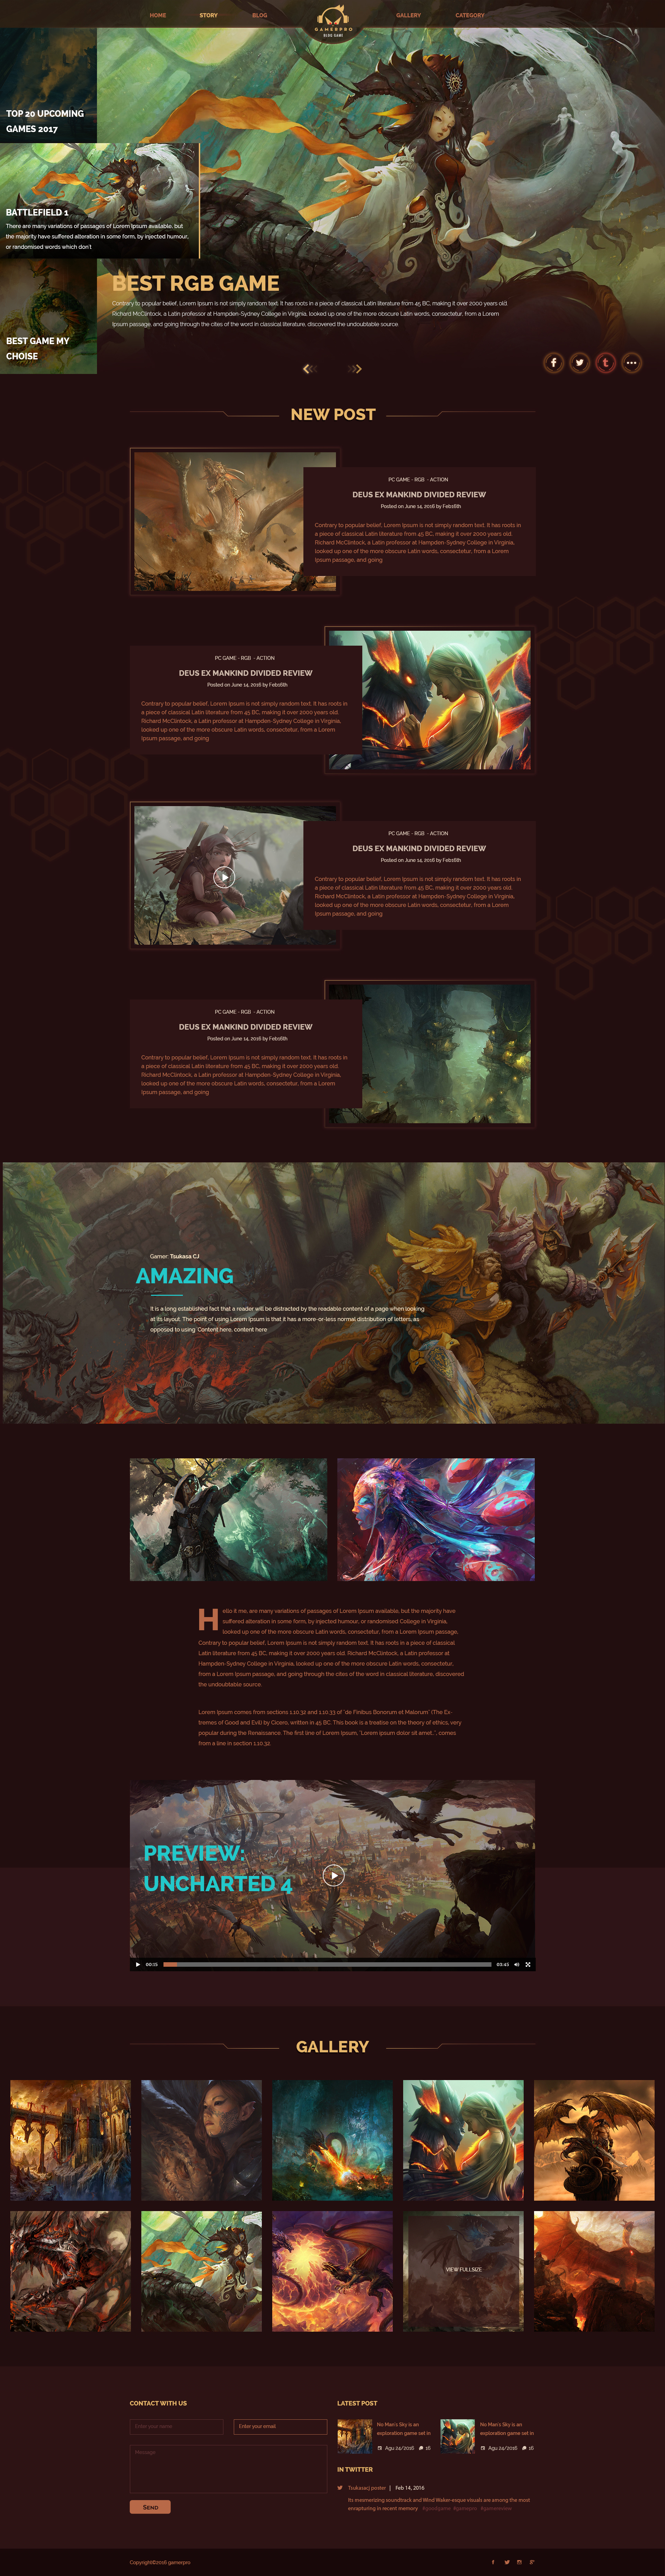 GAMERPRO - Fantastic Blog PSD Template for GAME SITES by 1protheme